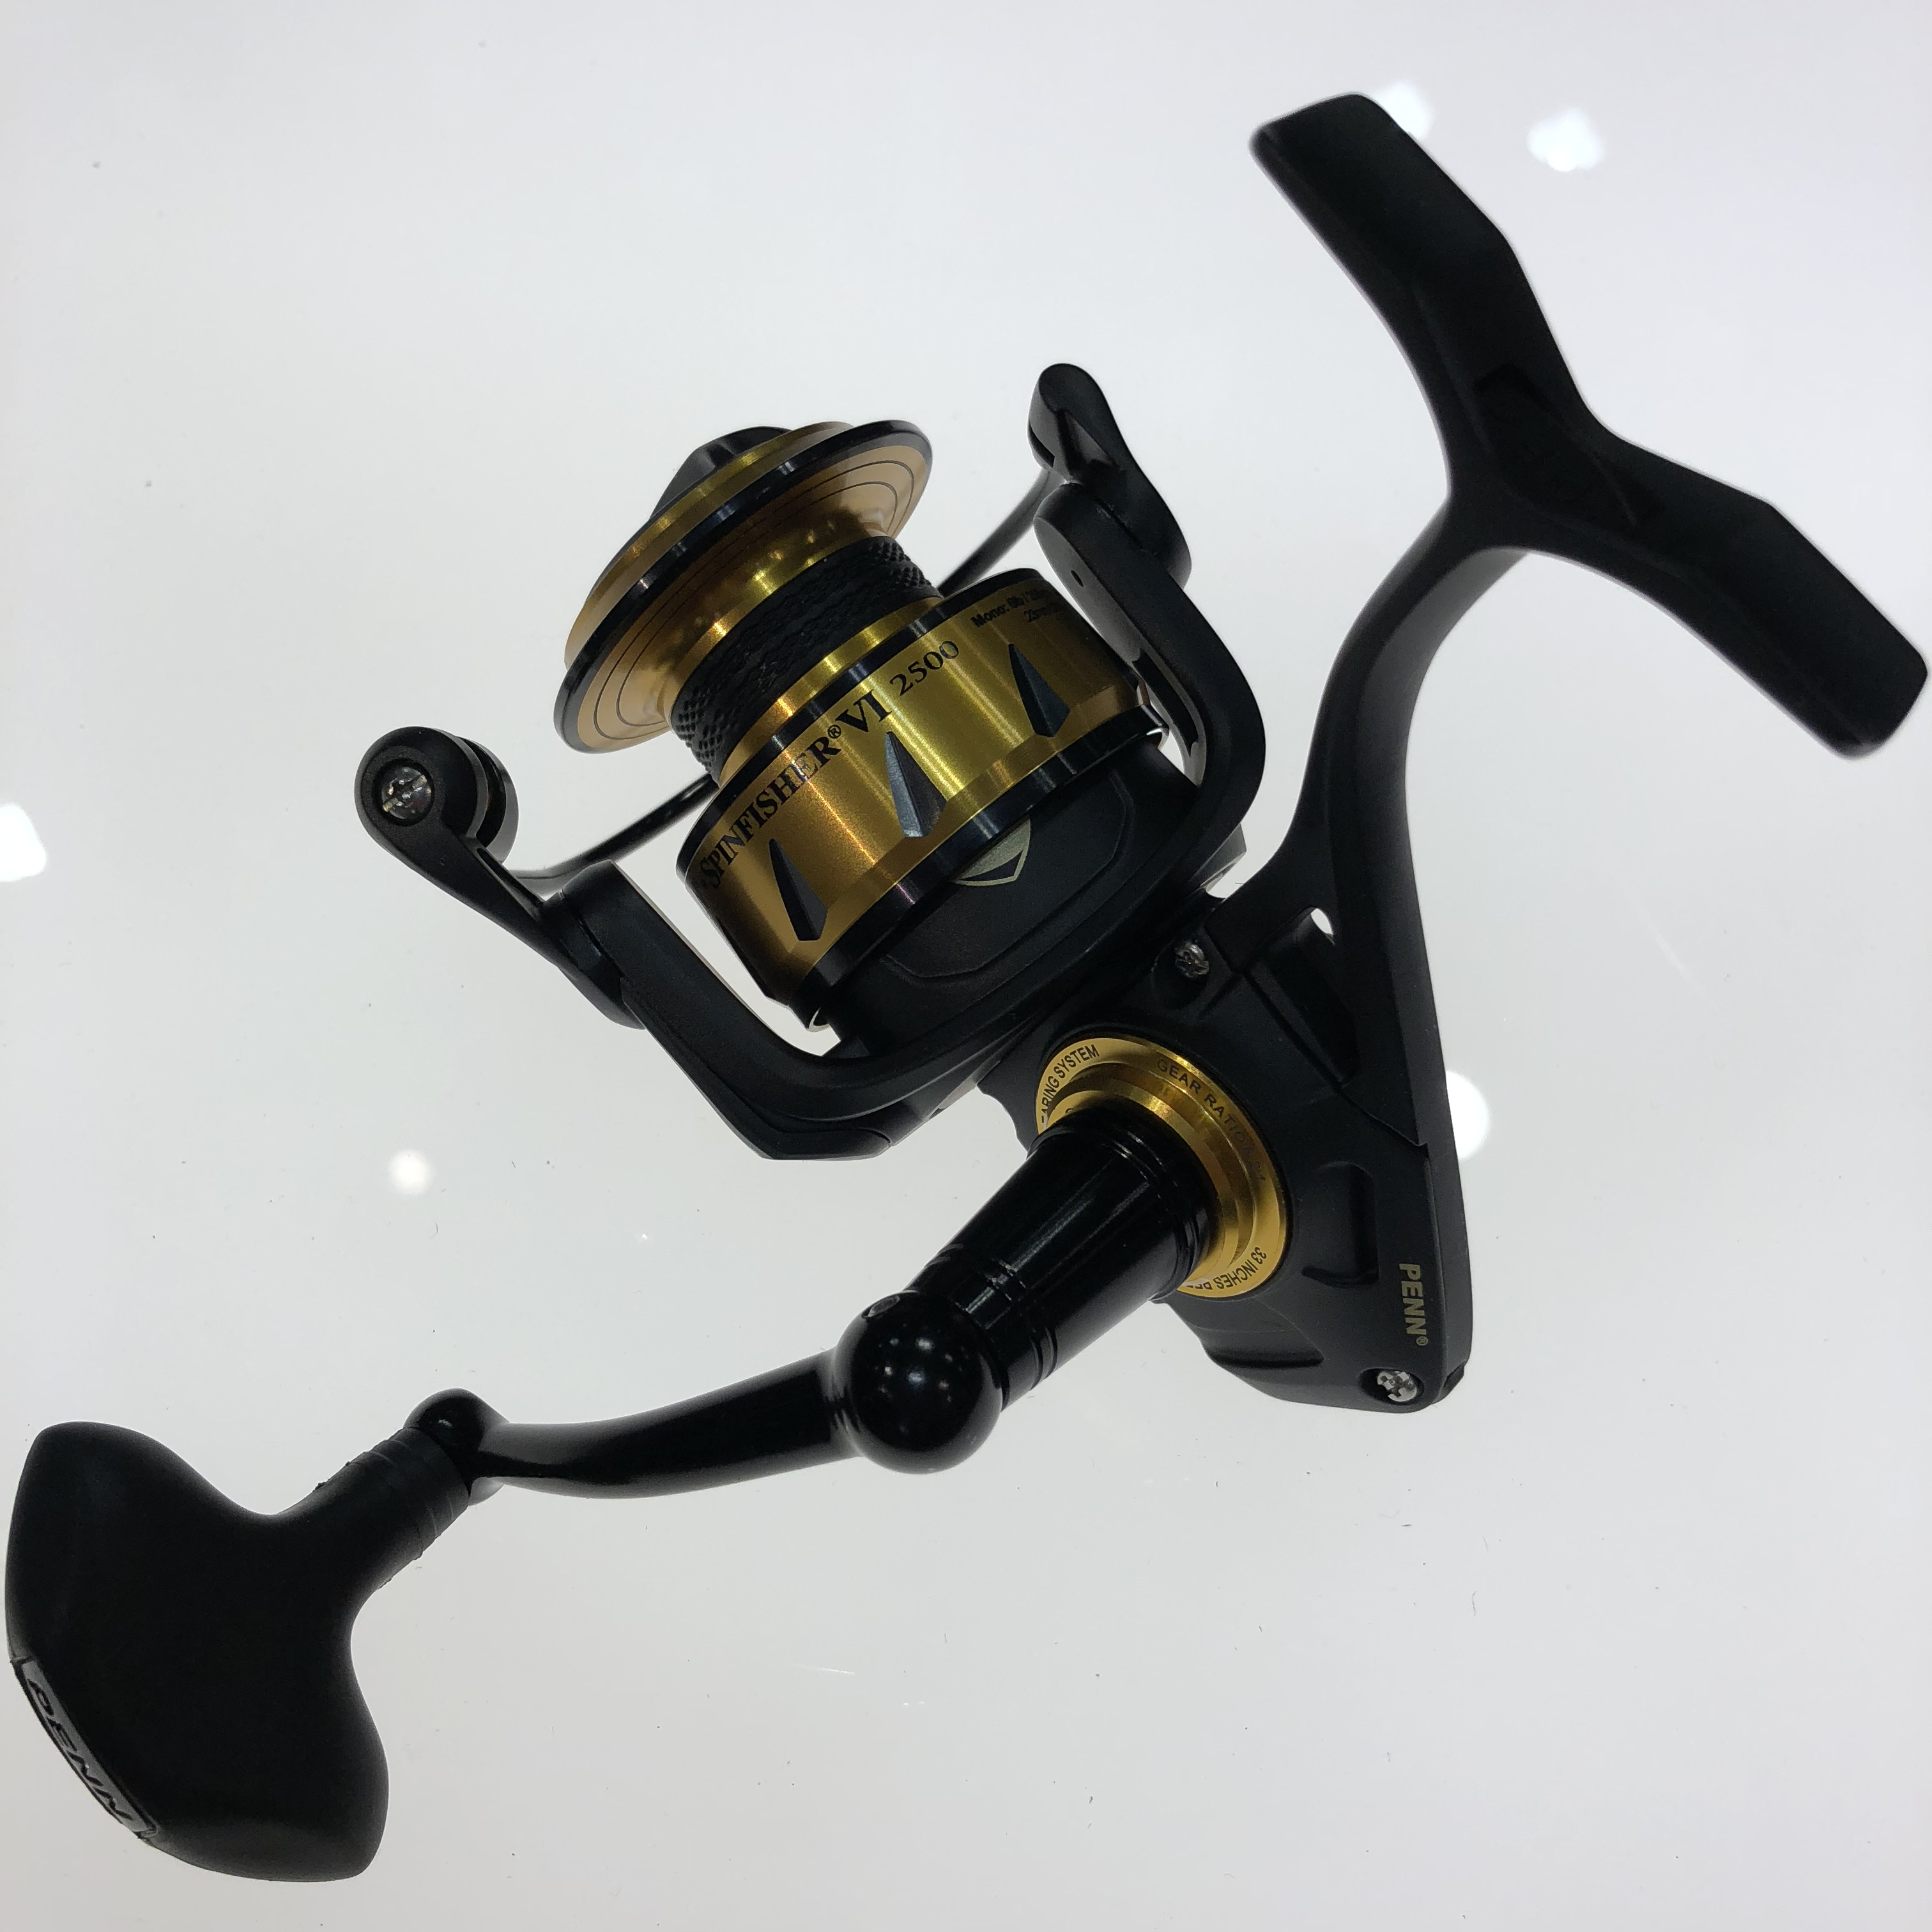 Fishing Report » Archive » PENN Spinfisher VI Spinning Reel